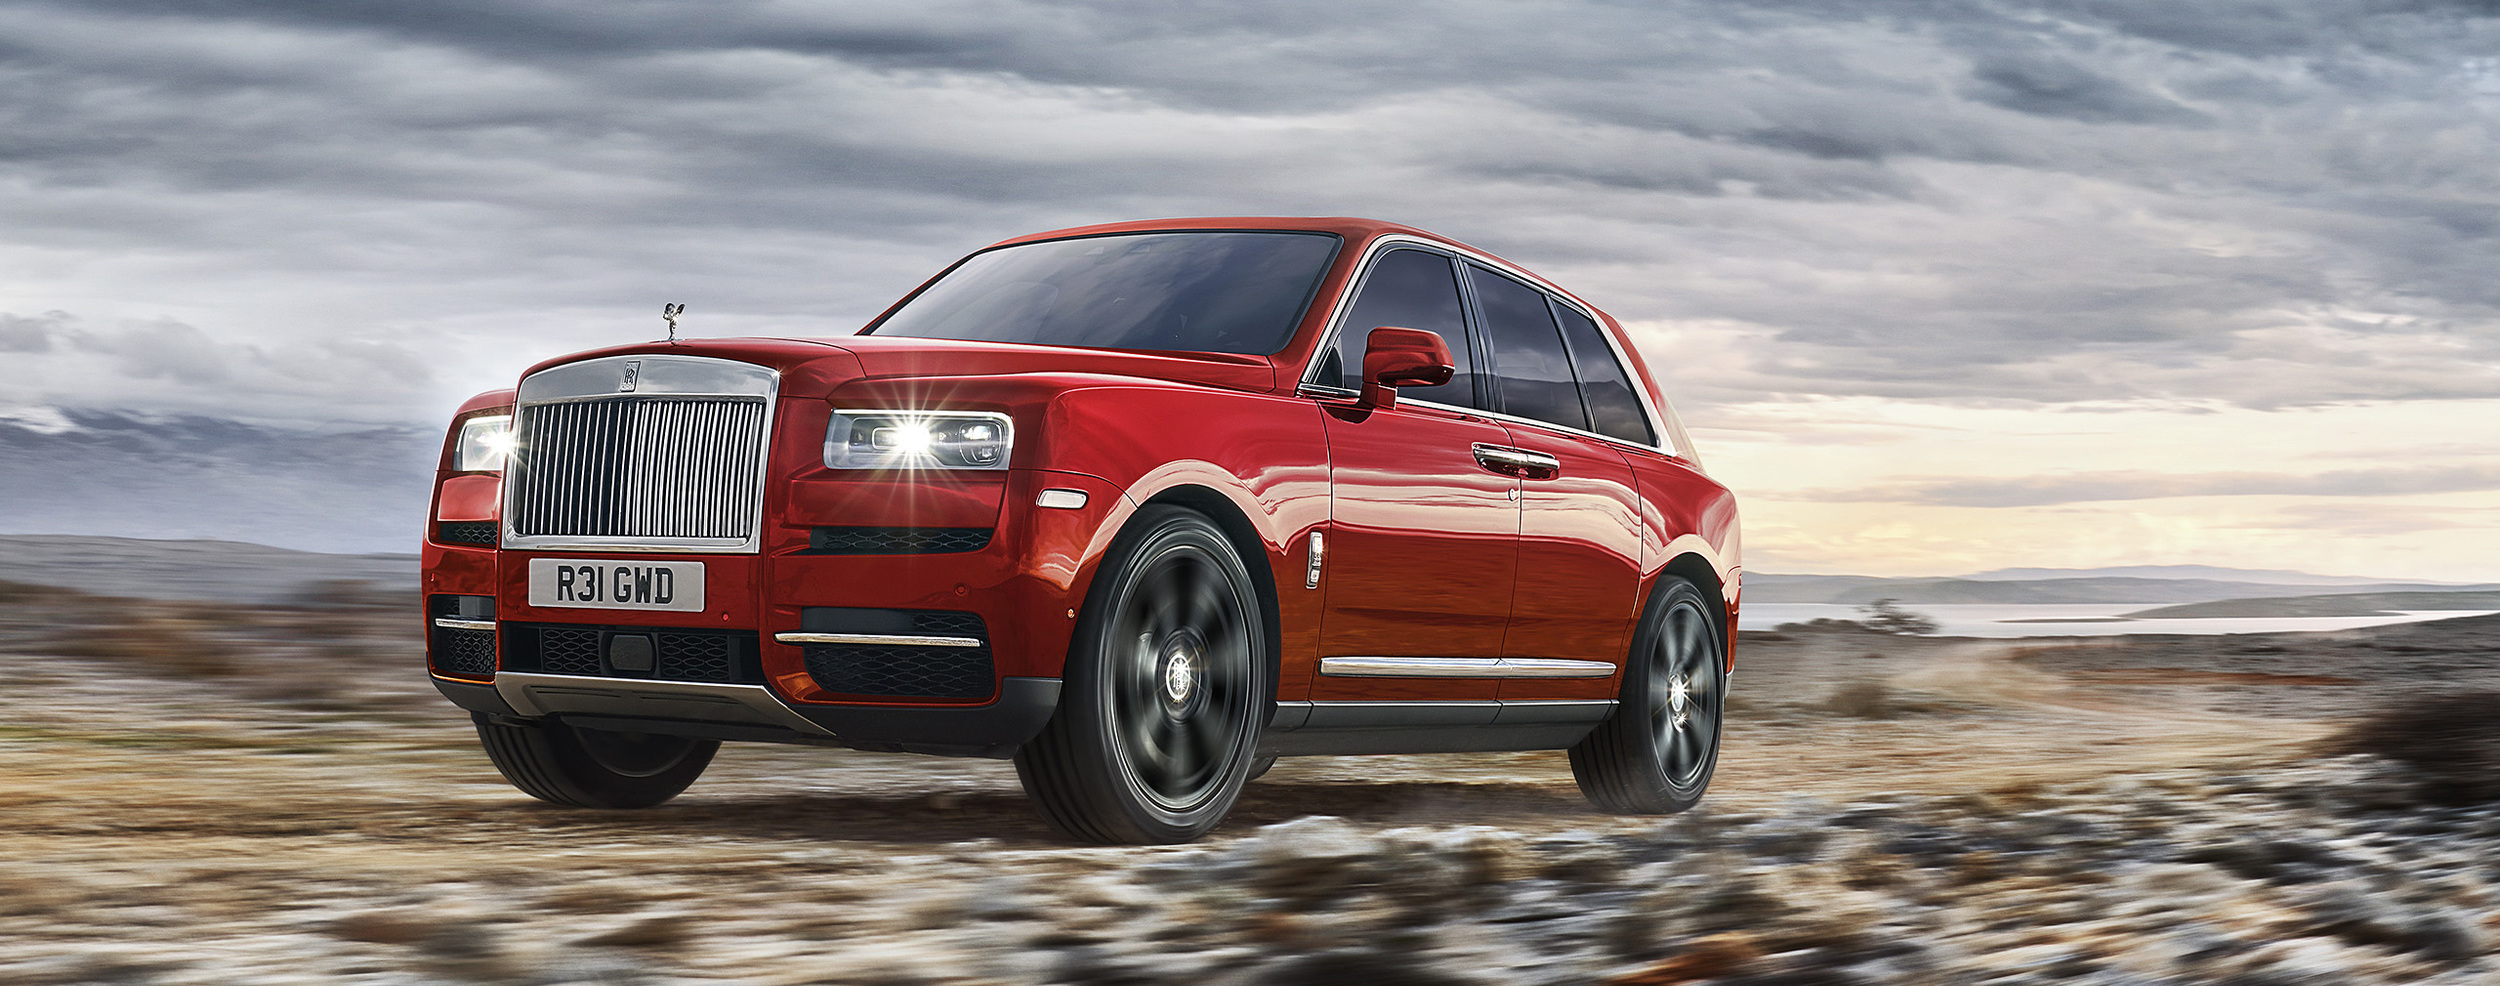 Rolls-Royce Cullinan revealed: Ultra-luxury SUV is so British, it curtsies